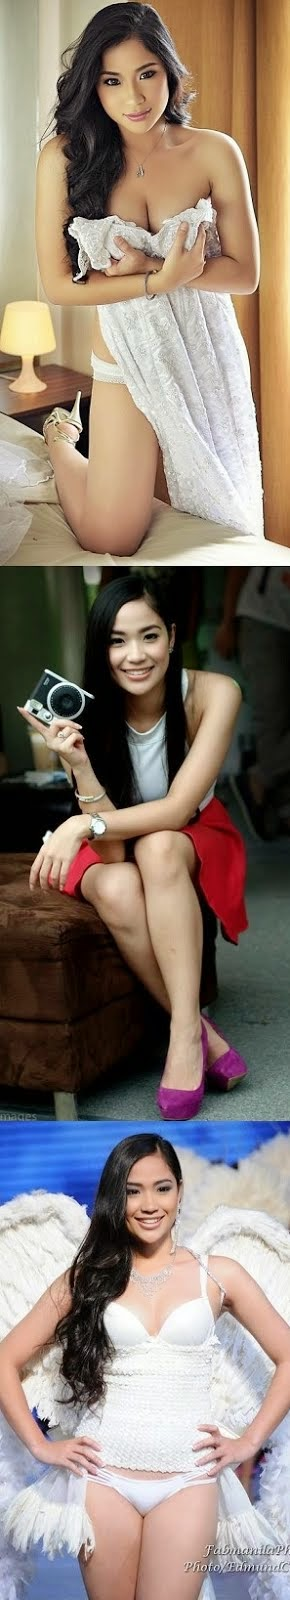 ALYZZA  AGUSTIN  Photos 7!